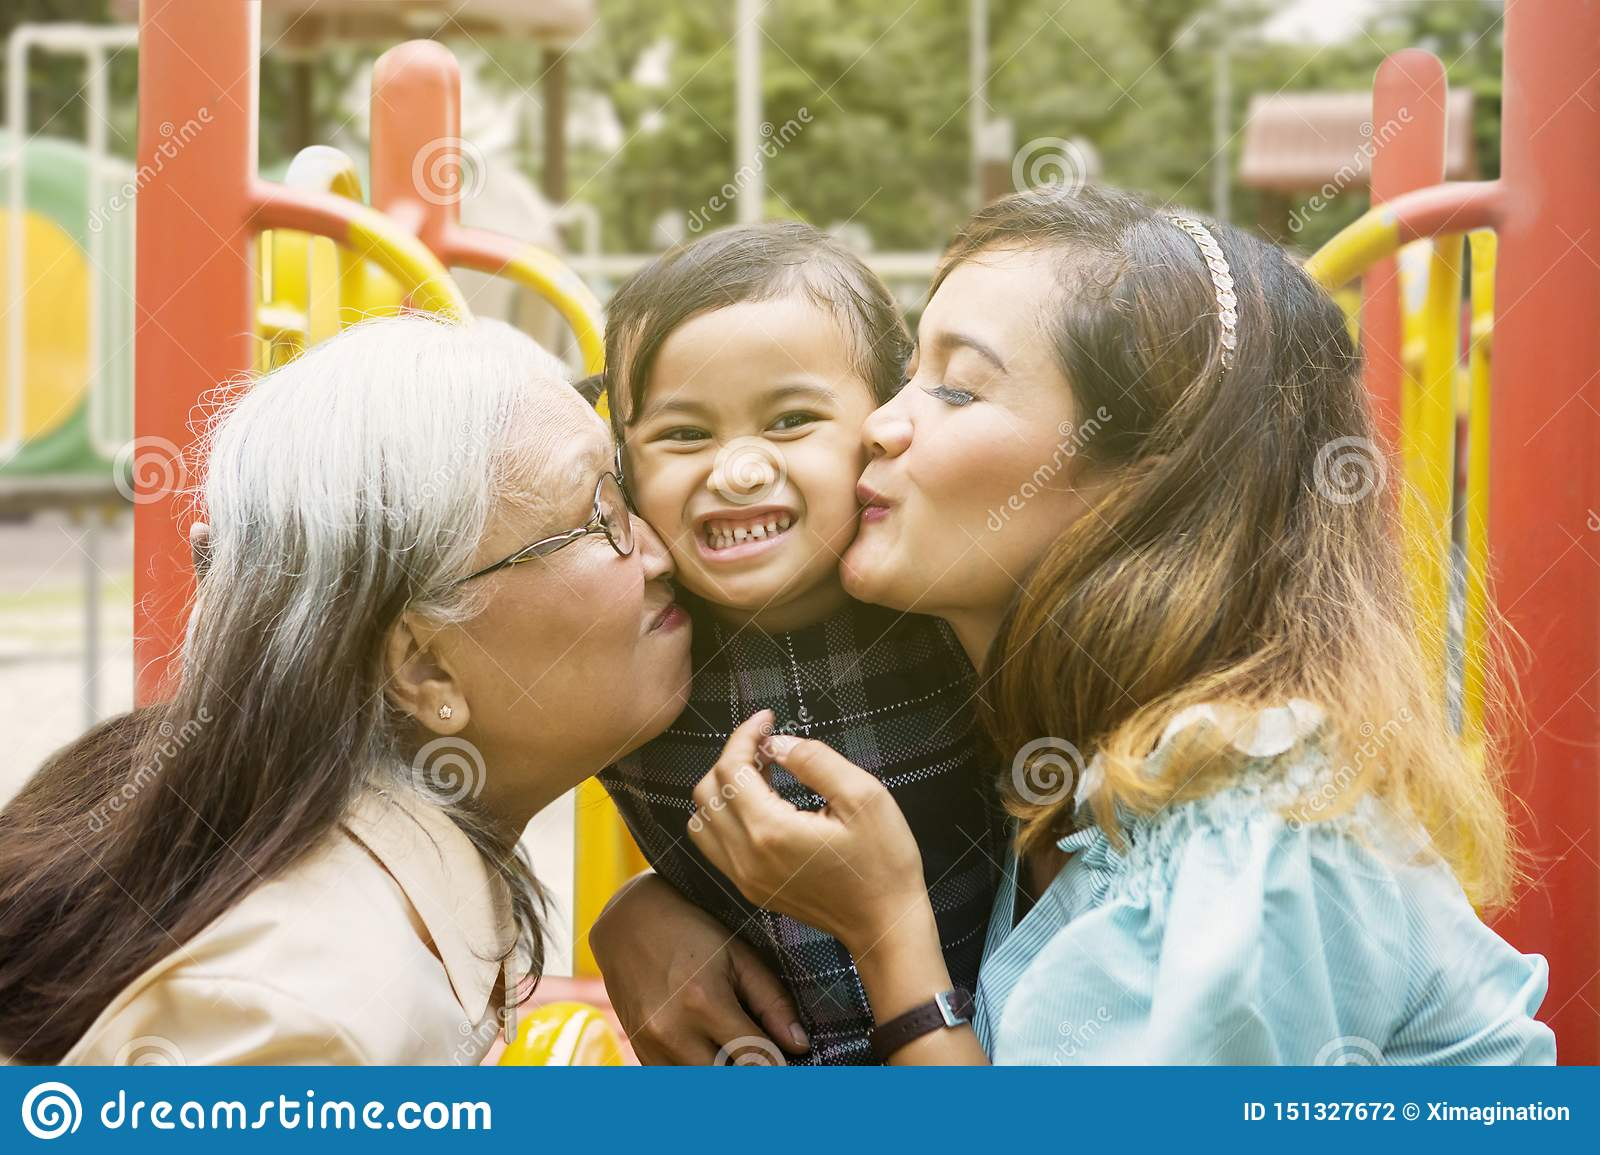 Little girl kissed by her mother and grandmother